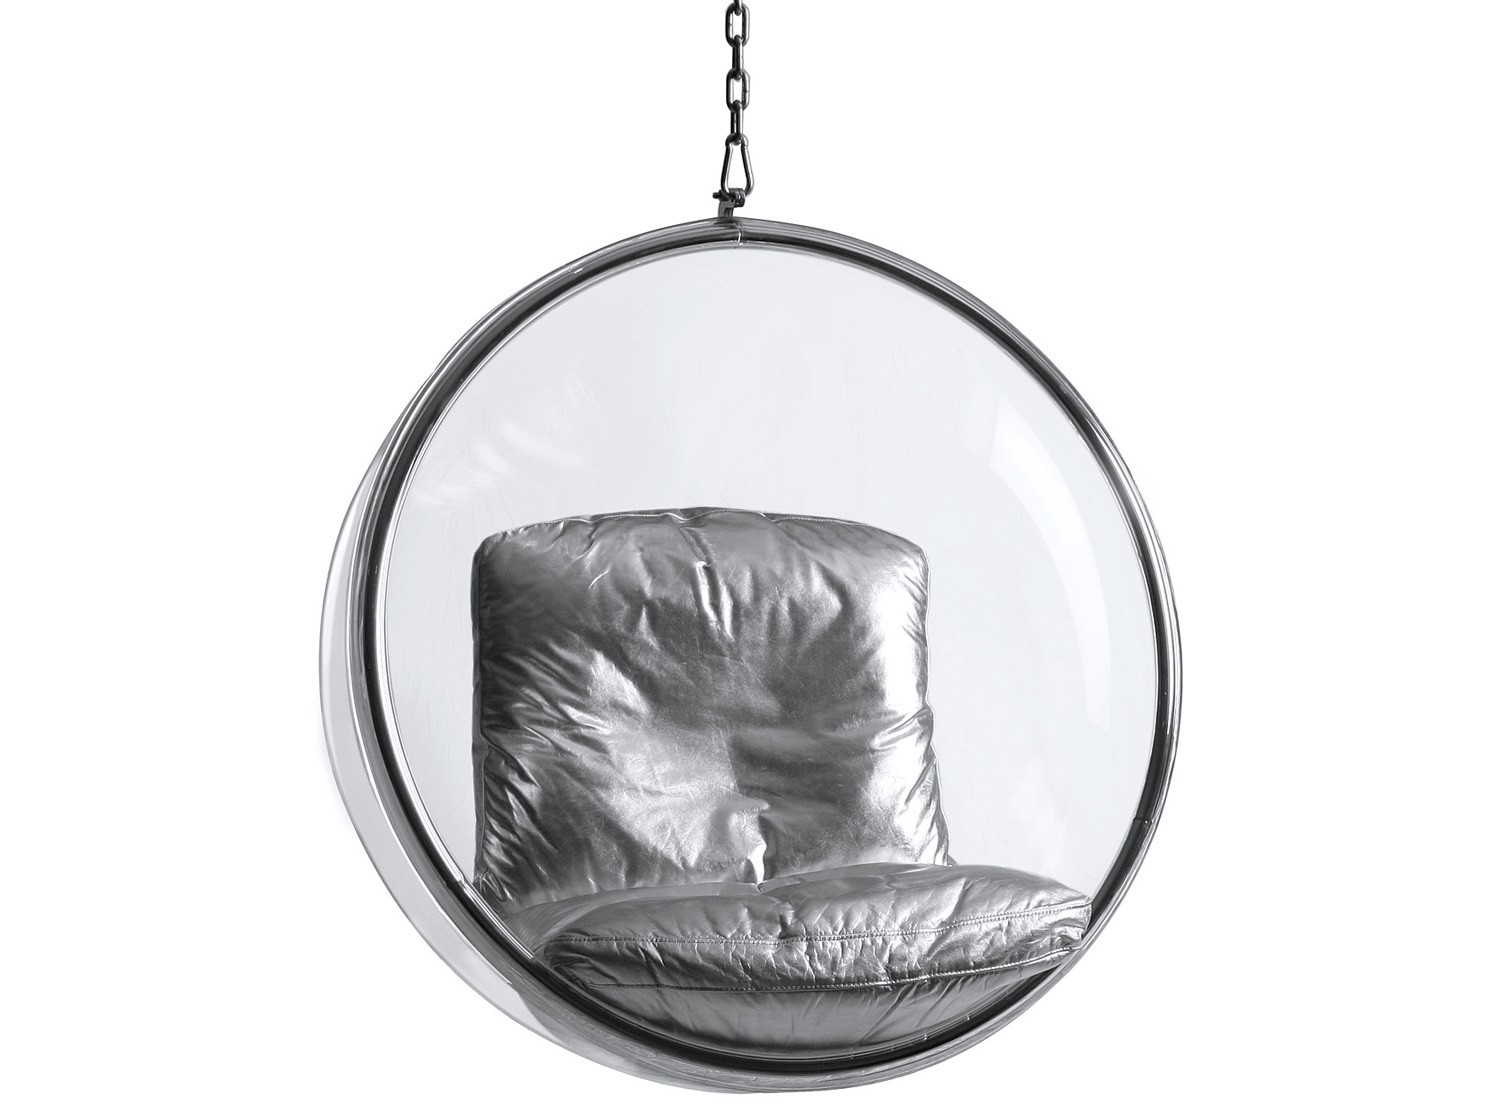 Bubble chair by eero aarnio platinum replica silver - Bubble chair replica ...